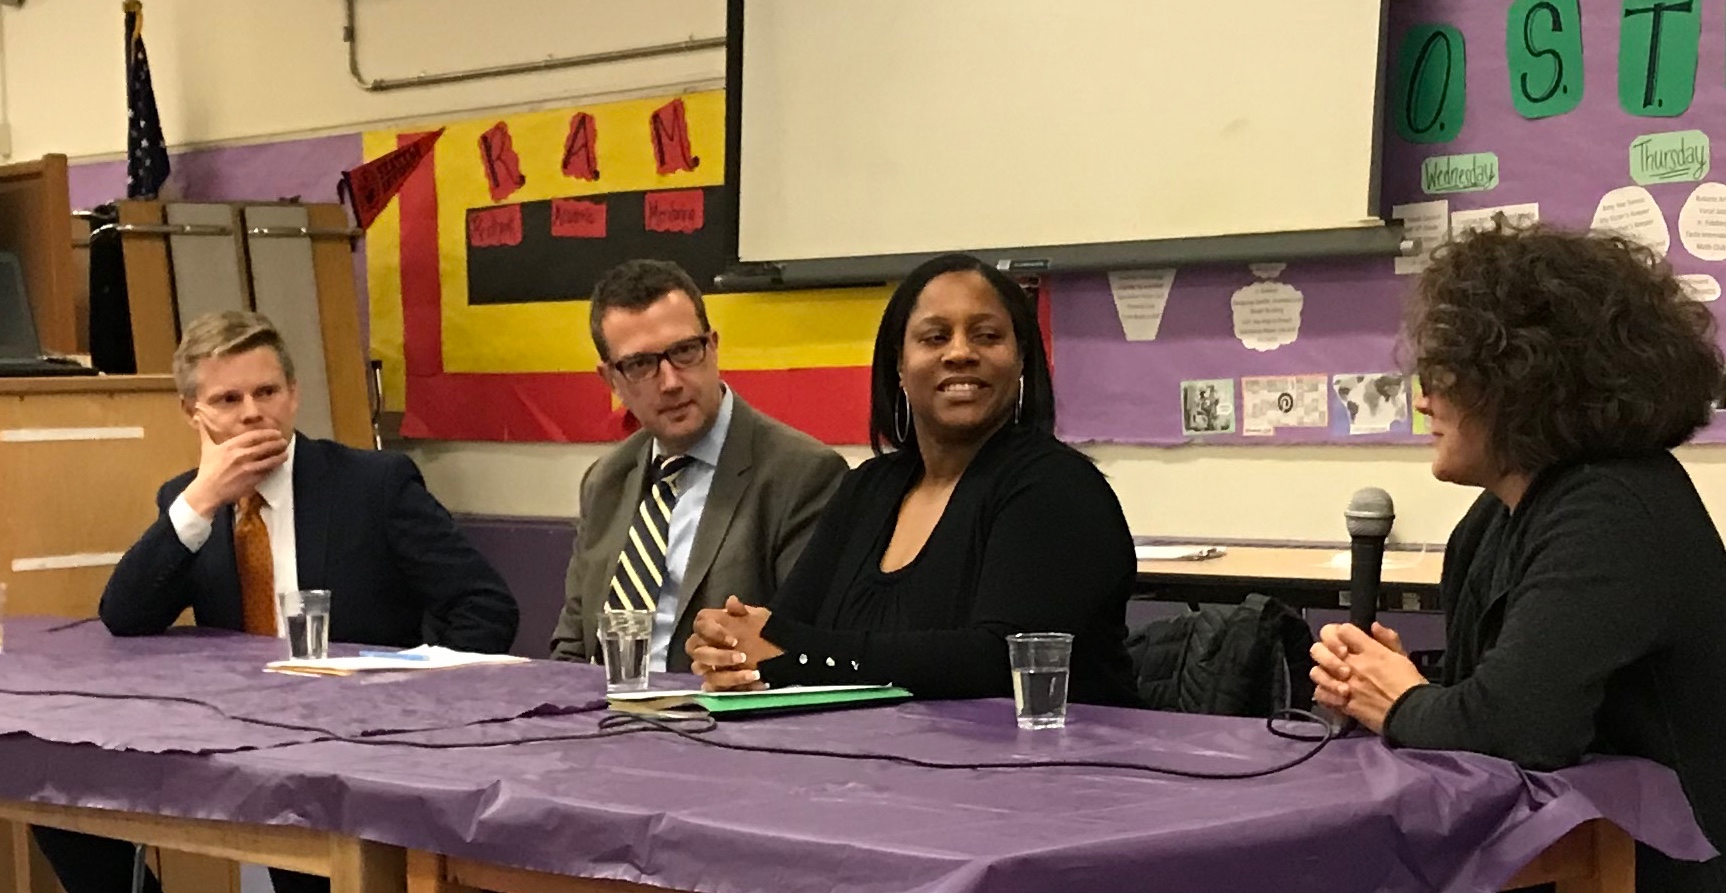 State Sen. Jamie Pedersen, King County Councilmember Joe McDermott, Emijah Smith of Children's Alliance take a question from moderator Kathleen Carson at the General Meeting Jan. 28, 2019.